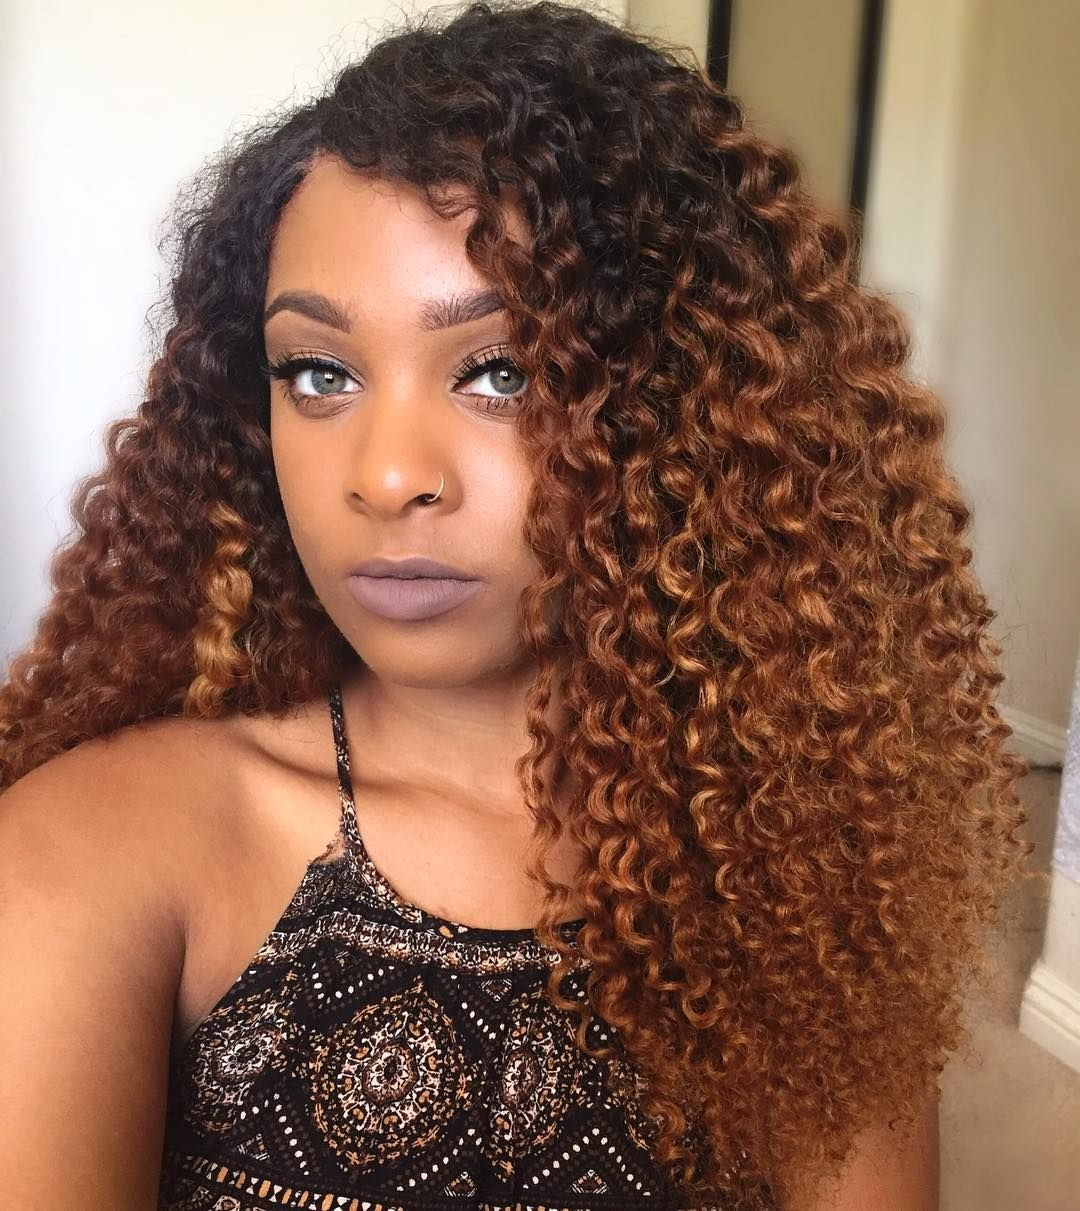 New Curly Textured Wefted Hair In 2019 Natural Hair Colored Curly Hair Dyed Natural Hair Brown Ideas With Pictures